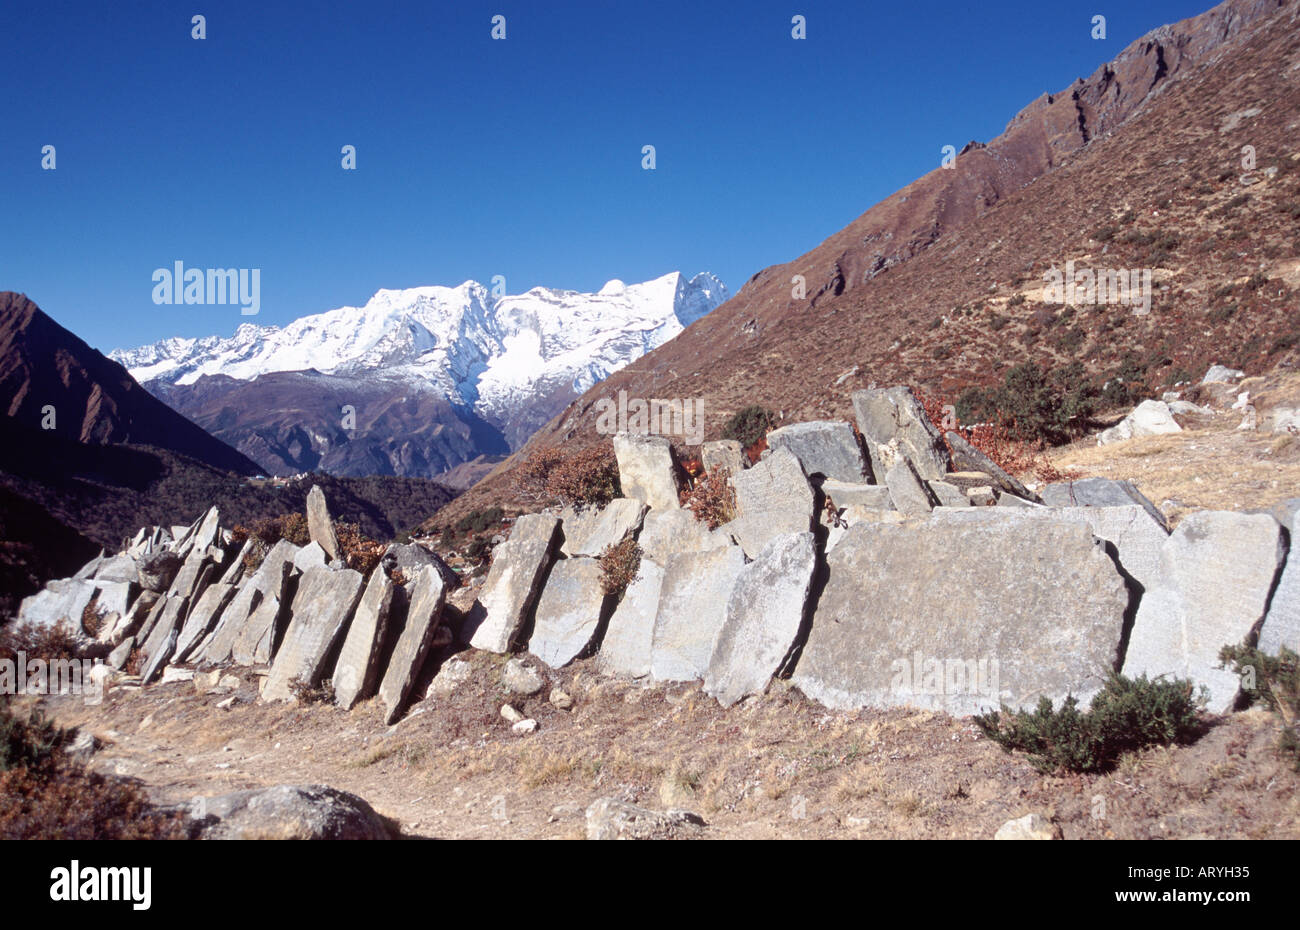 Manni stone with Kwande (6187m) above, Tengboche in the mid-distance. - Stock Image